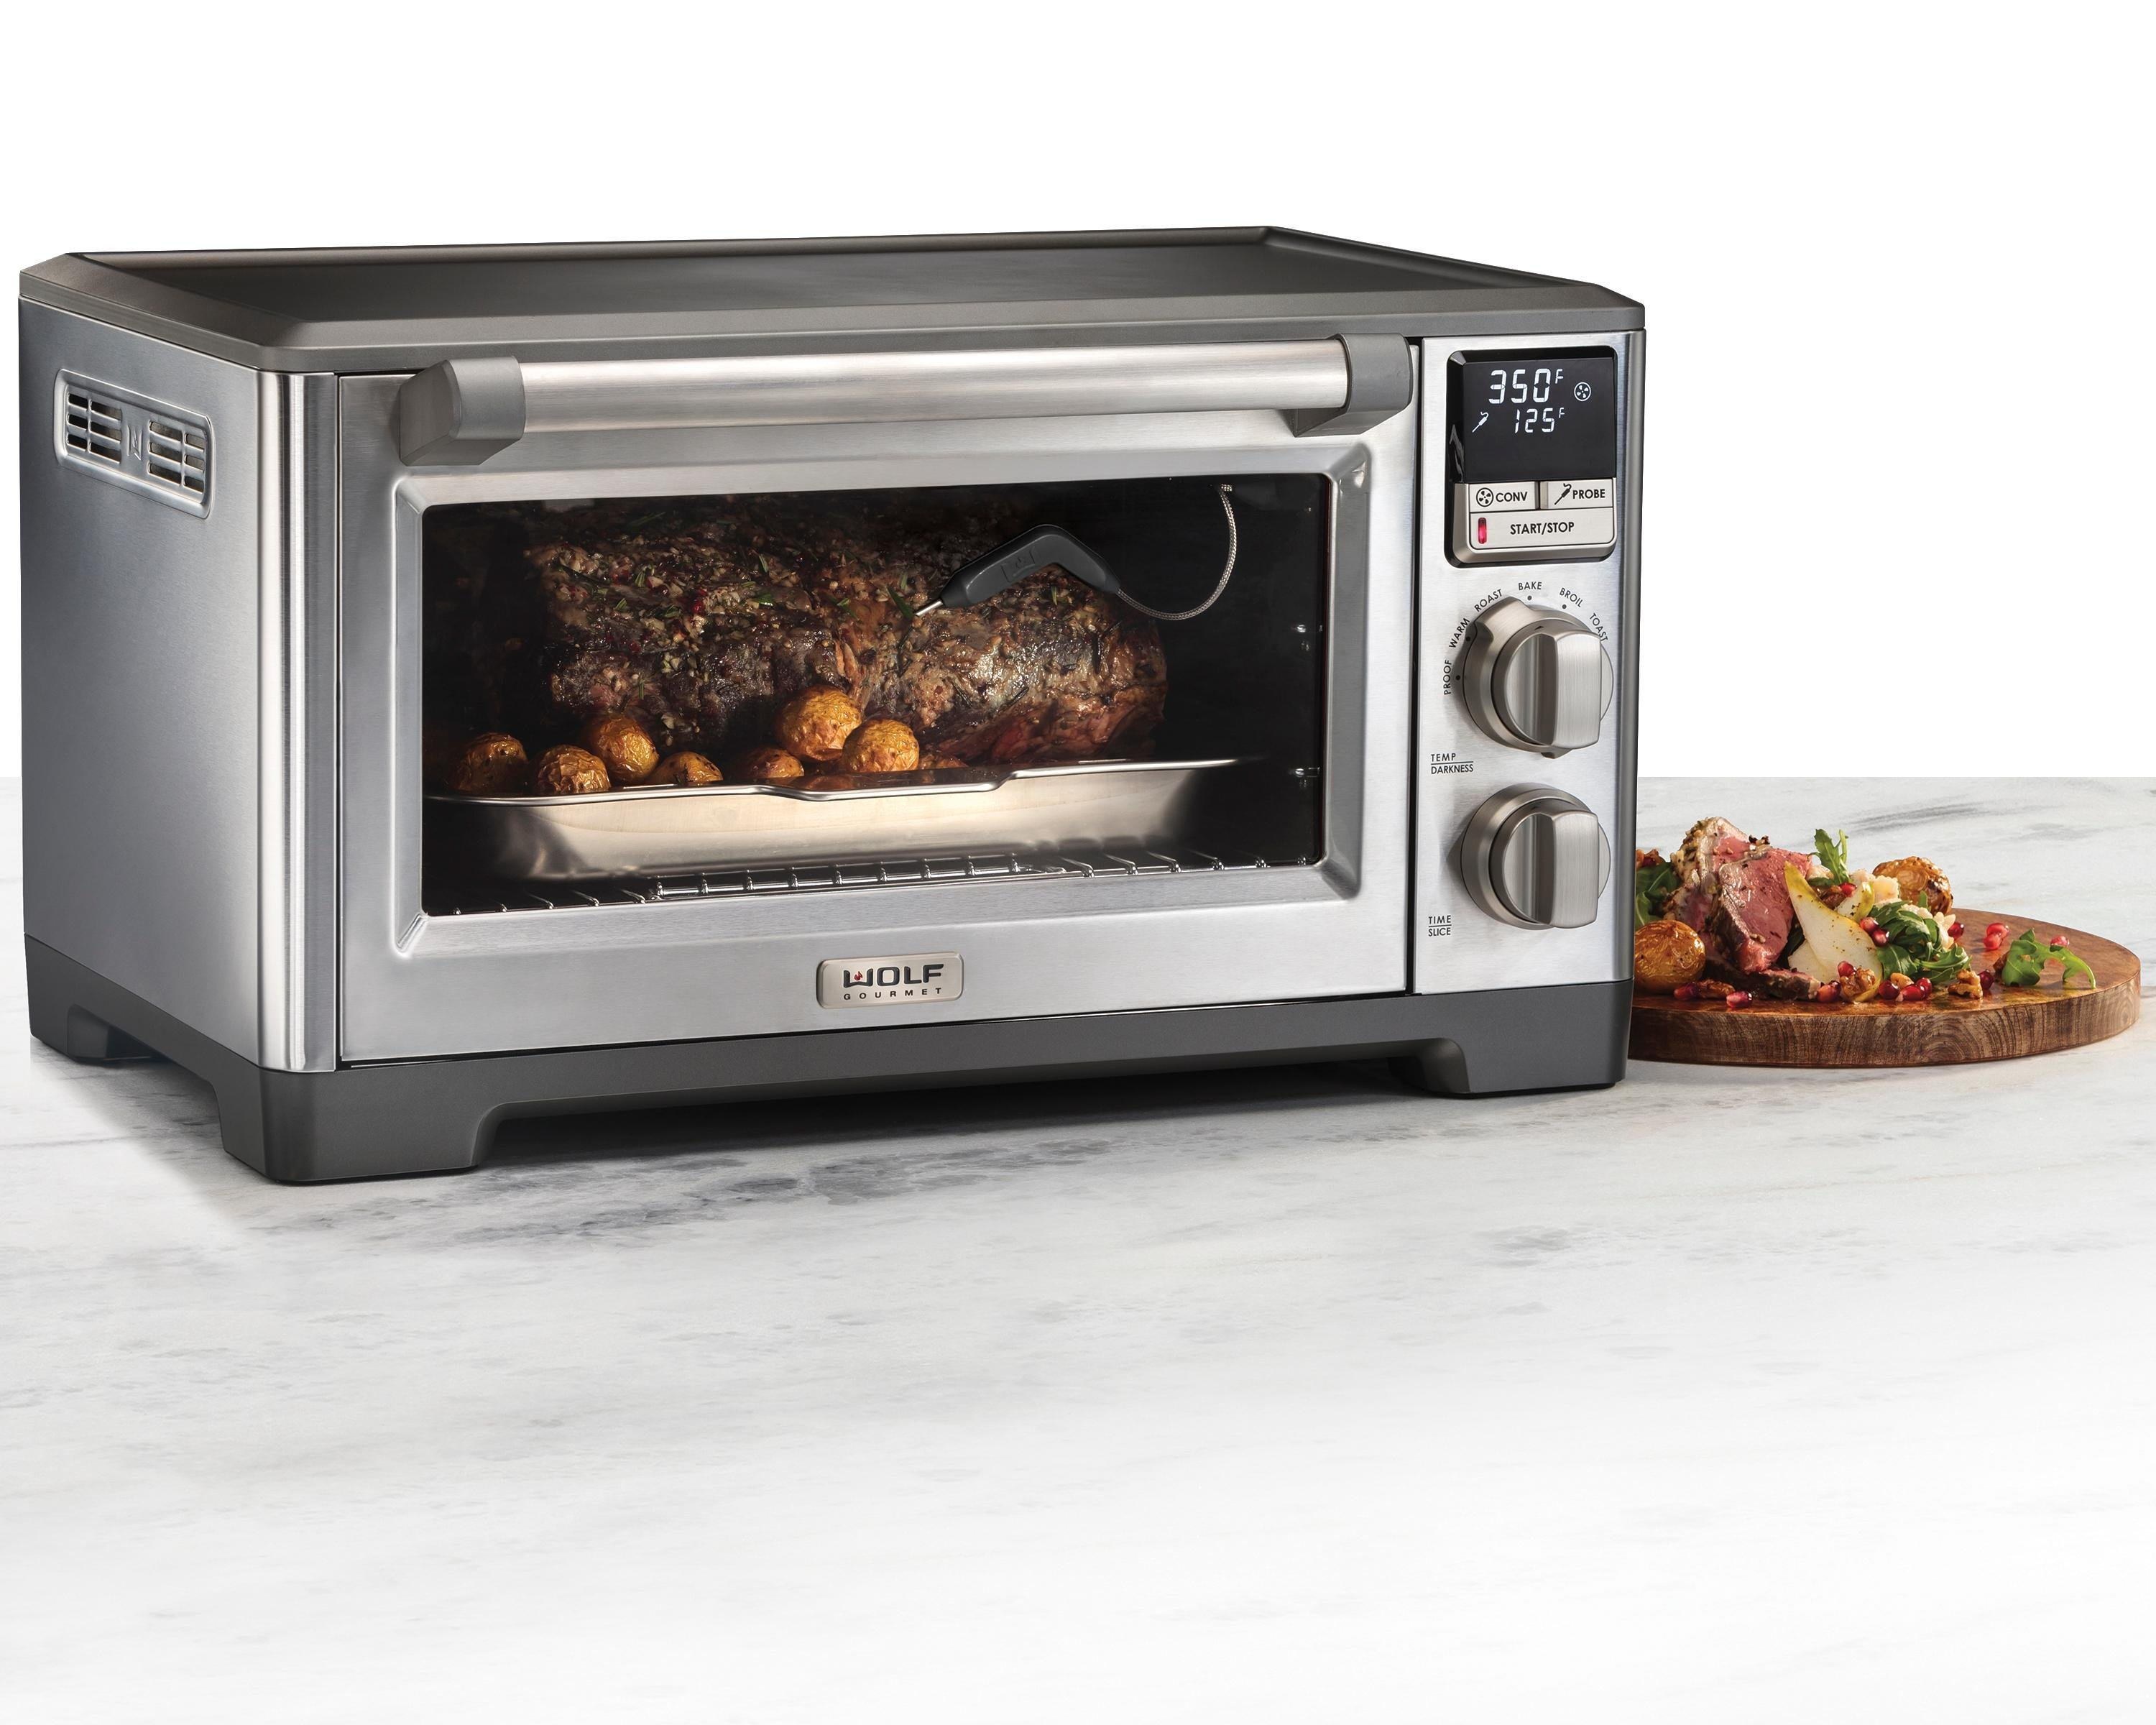 Wolf Countertop Oven Vancouver : Amazon.com: Wolf Gourmet Countertop Oven with Convection (WGCO100S ...